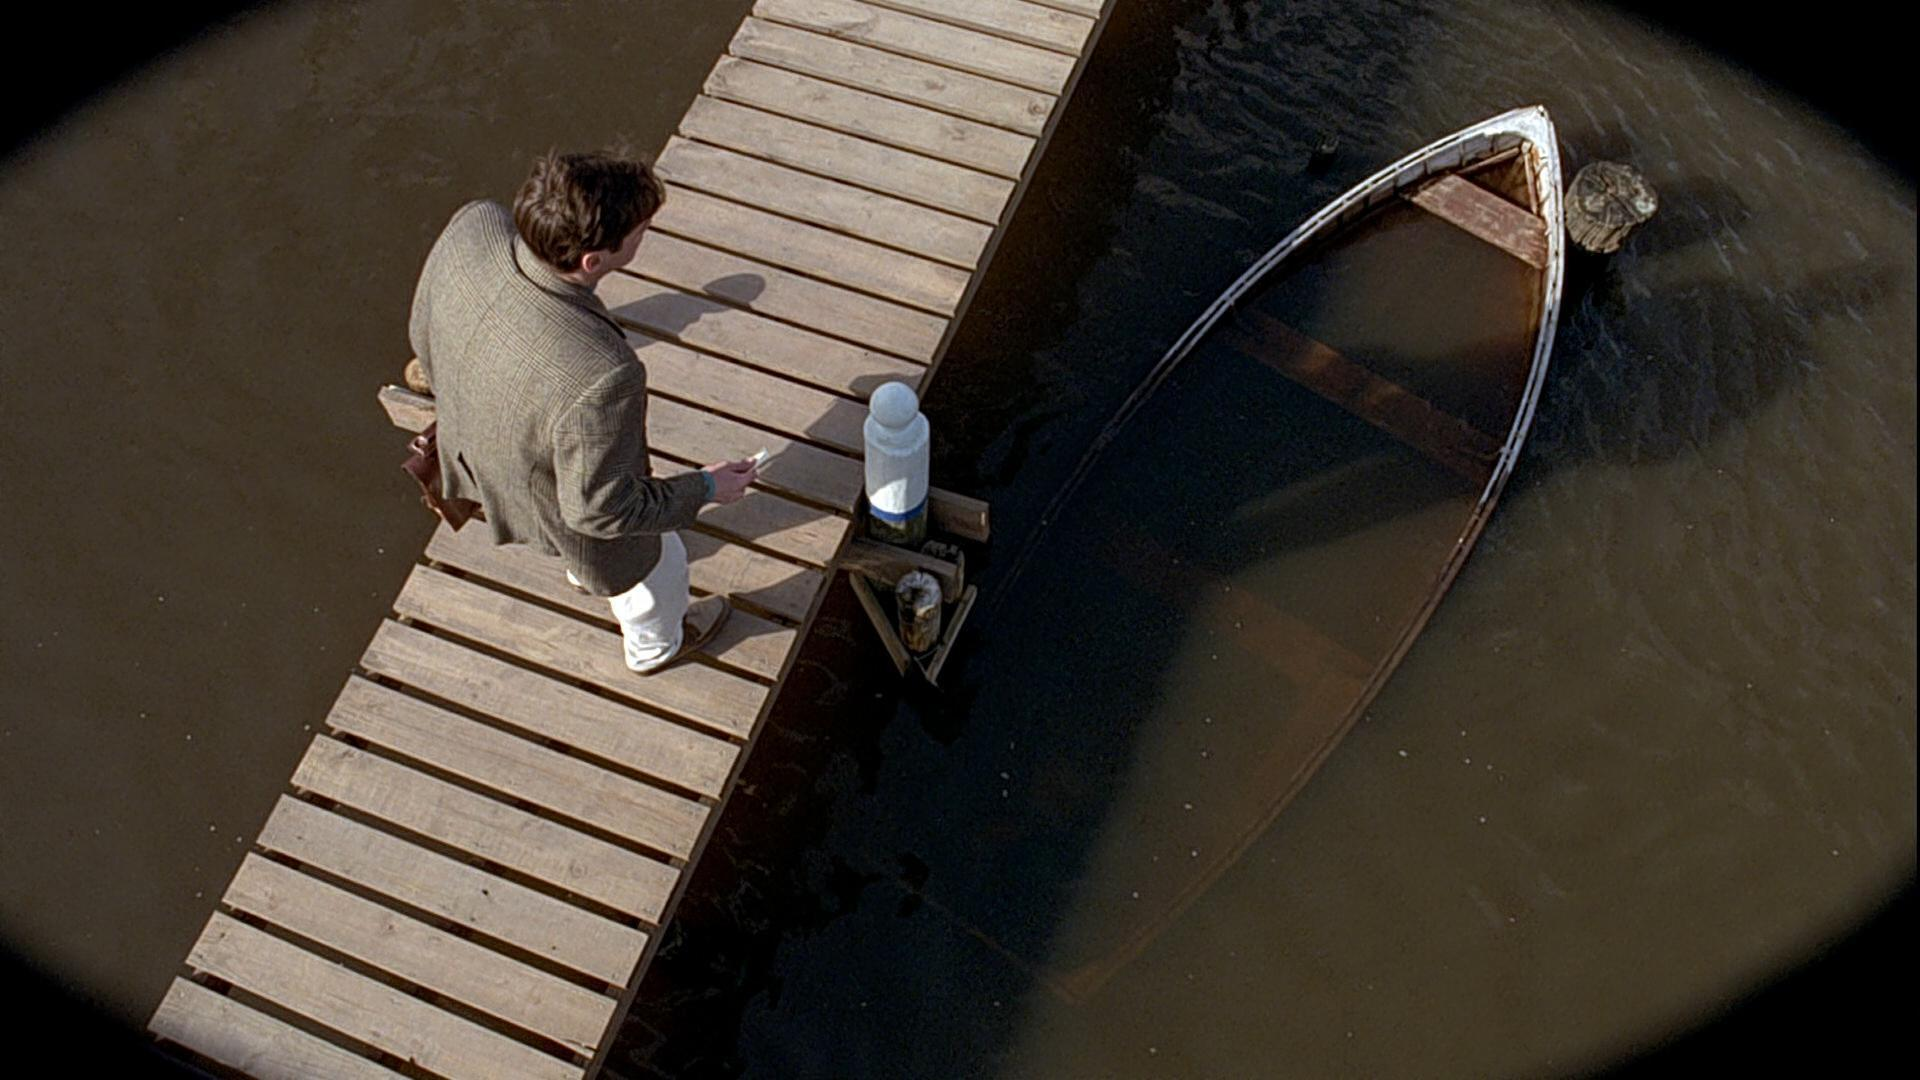 Image gallery for The Truman Show - FilmAffinity